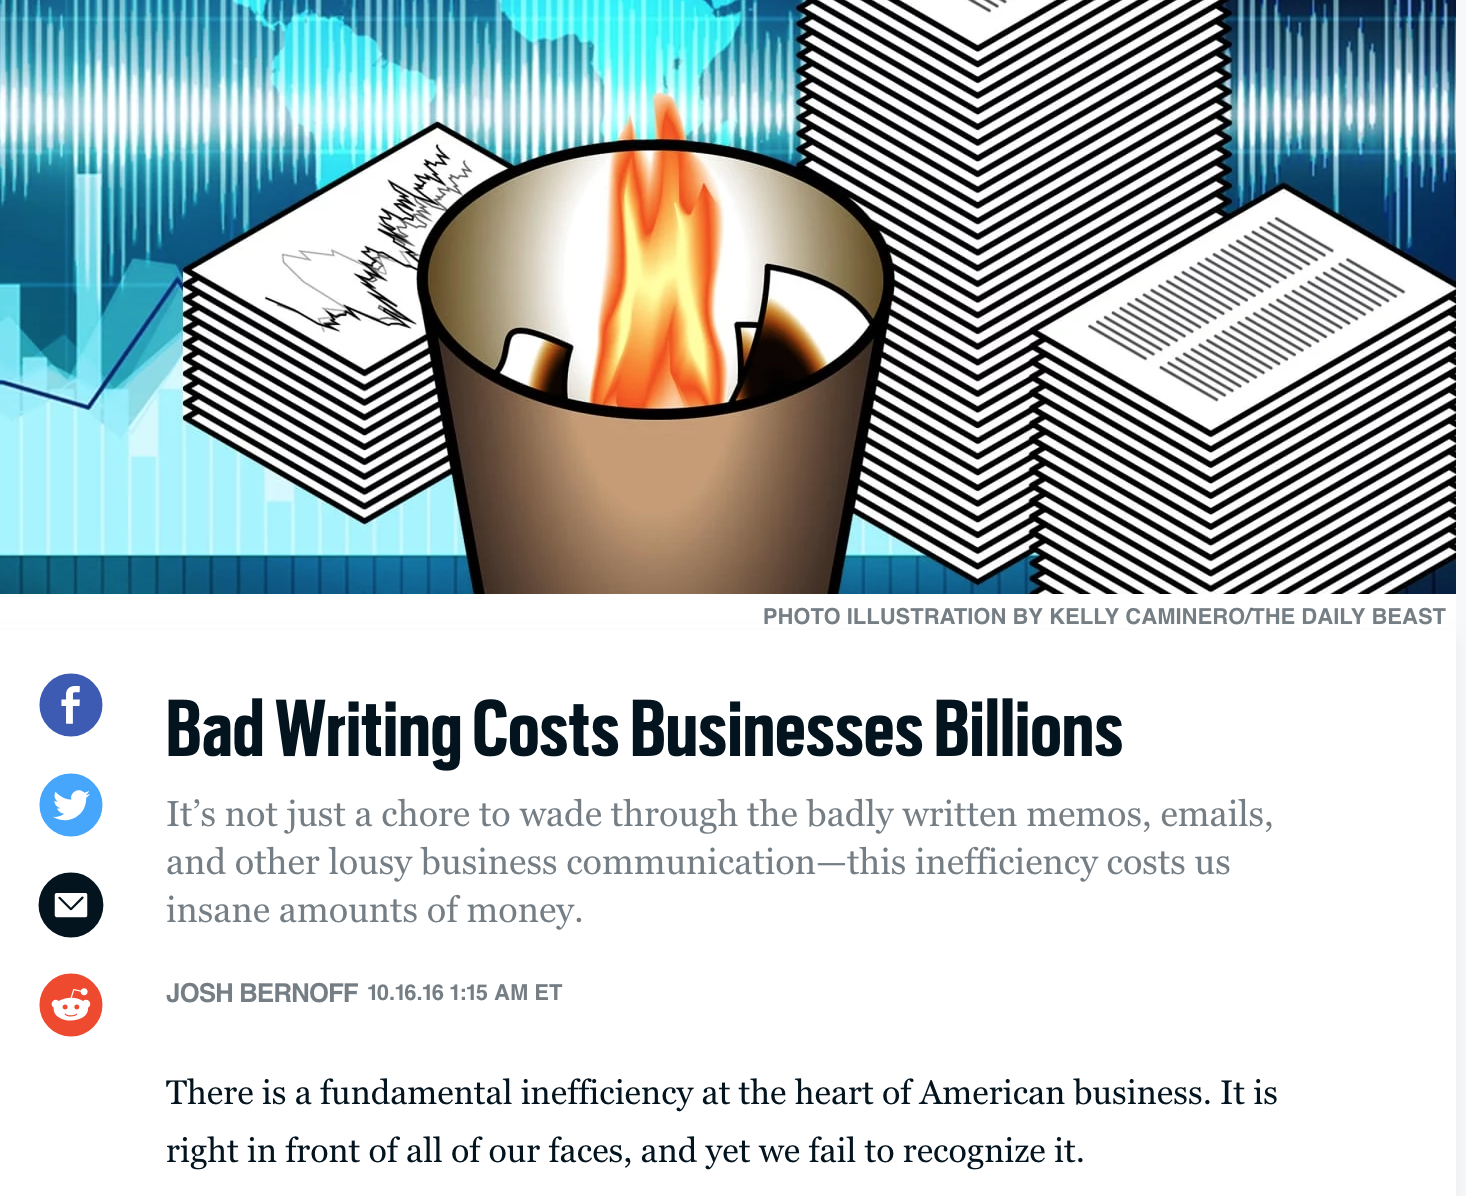 bad writing costs billions